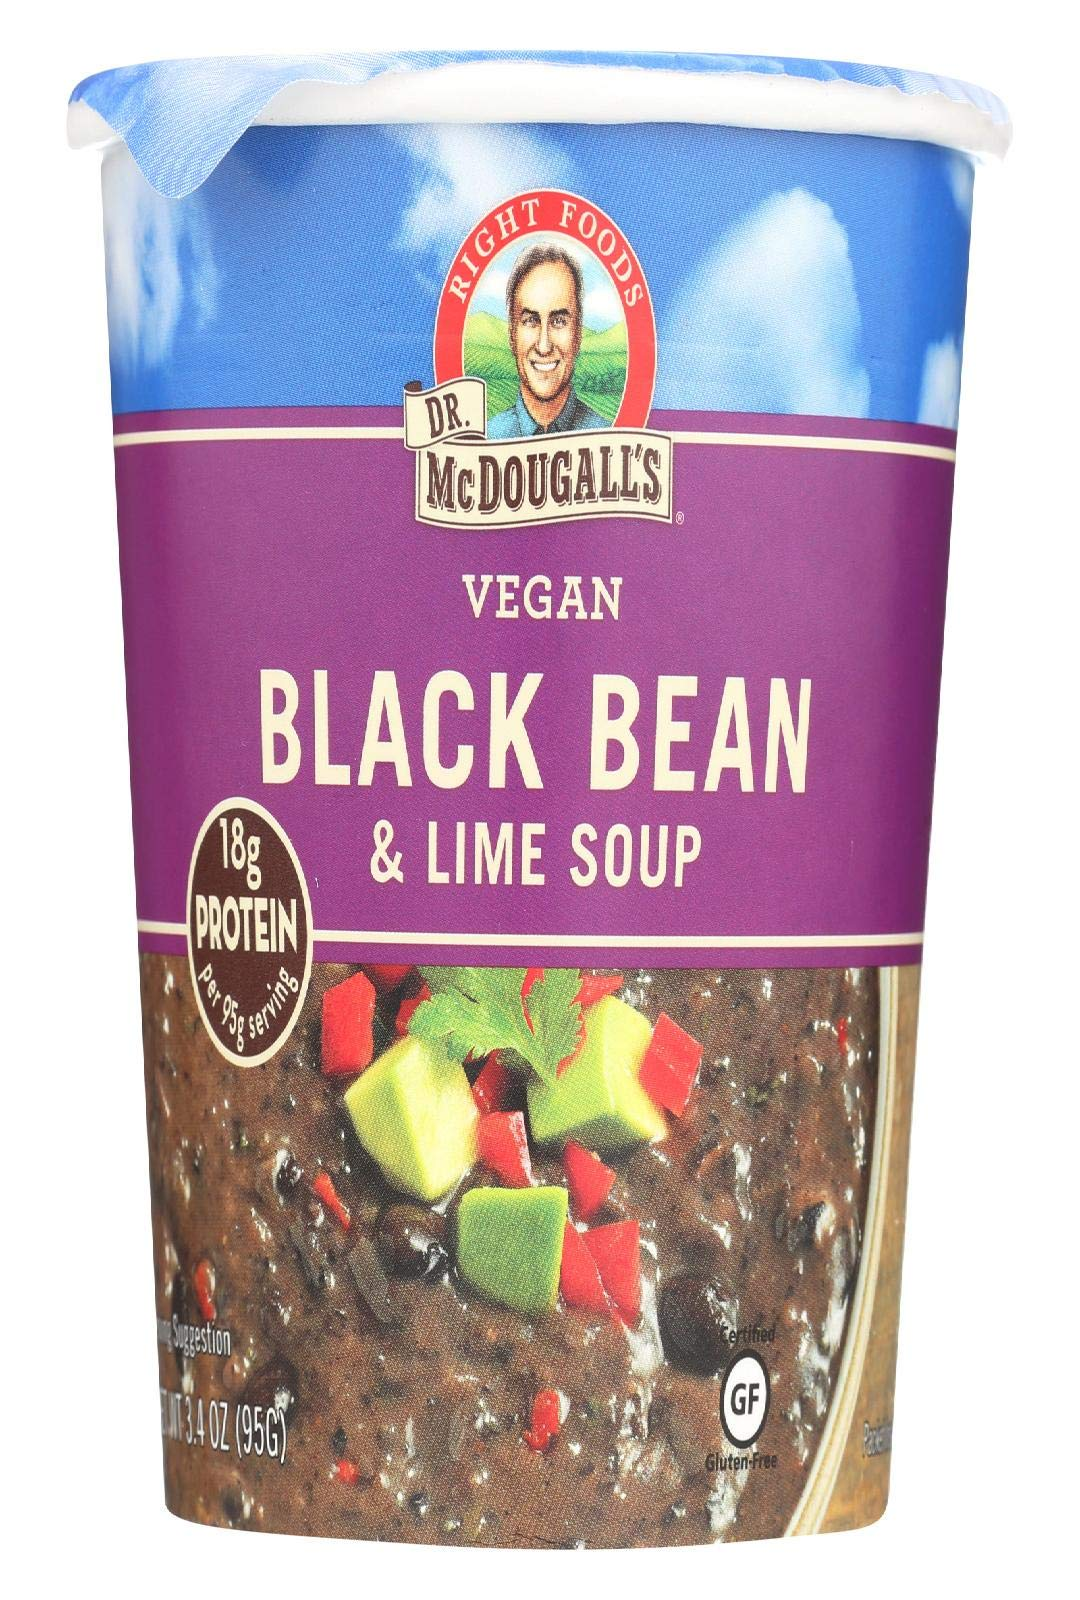 Dr McDougalls Right Foods Black Bean and Lime Big Cup Soup, 3.4 Ounce - 6 per case. by Dr. McDougalls Right Foods